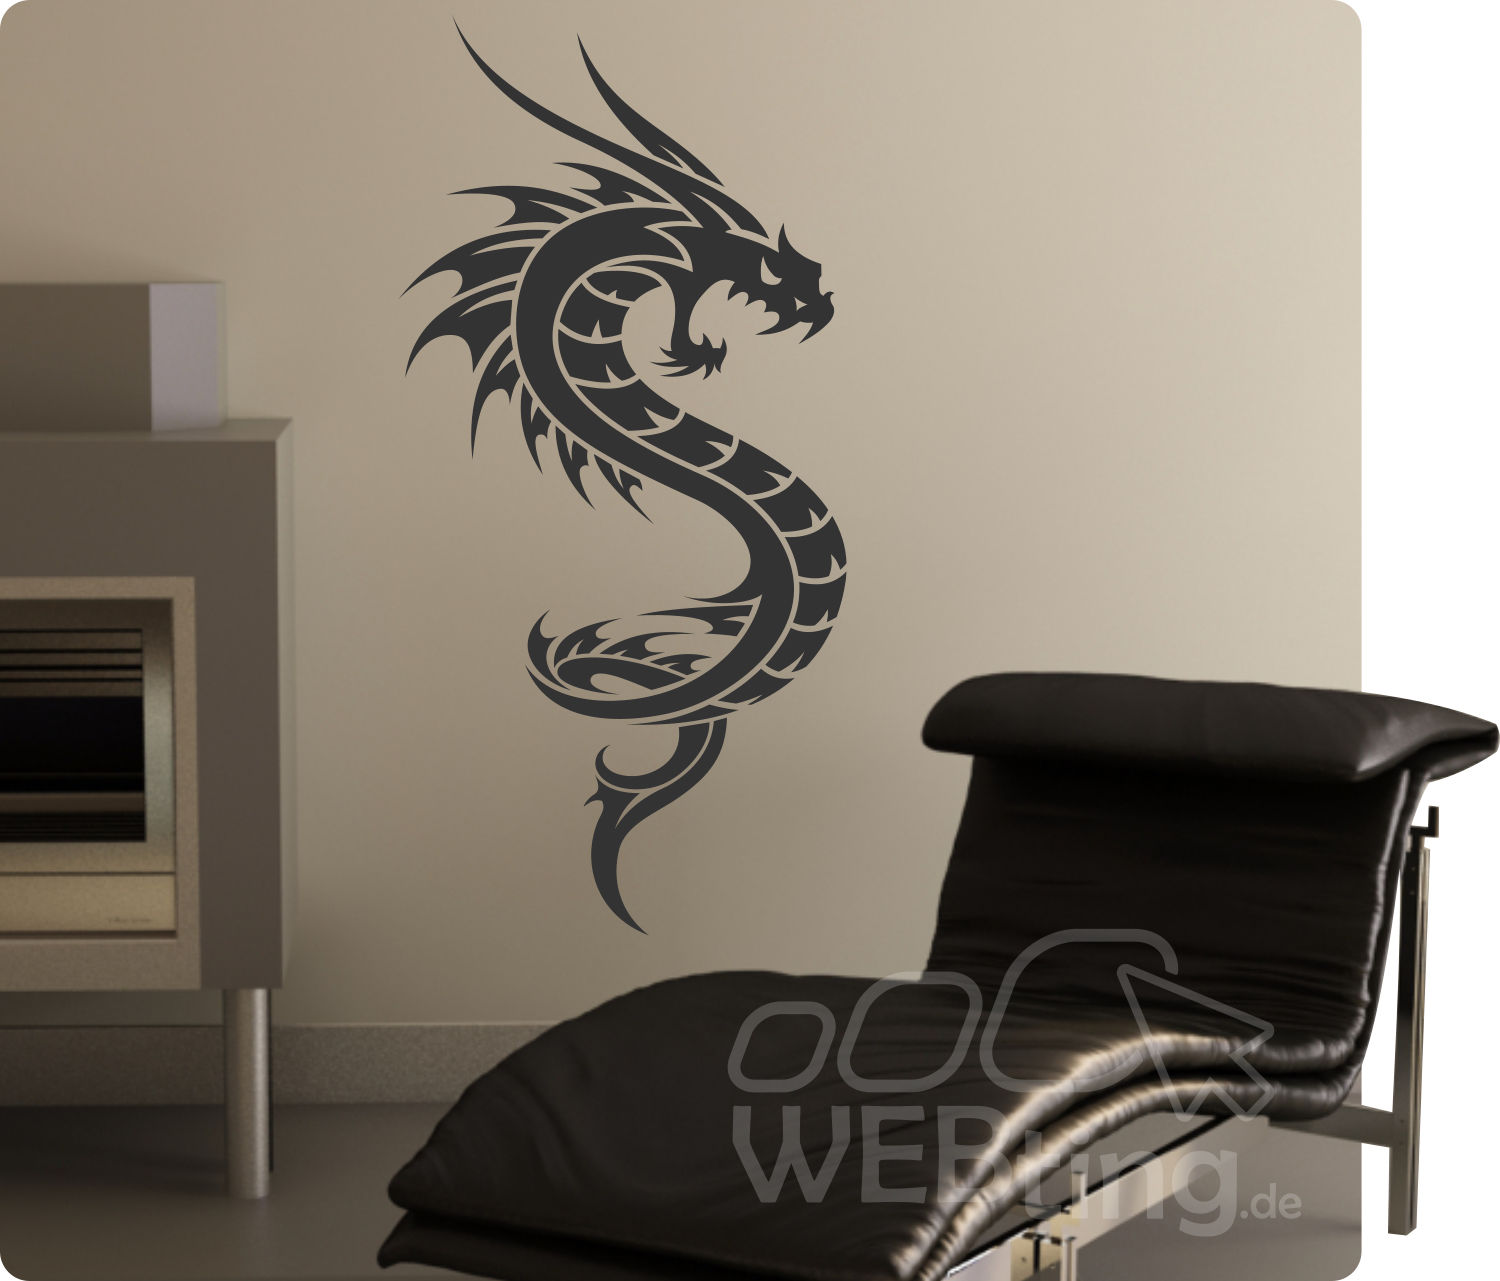 dragon drachen wandtattoo wandfolie wandaufkleber aufkleber tattoo tribal wand 1. Black Bedroom Furniture Sets. Home Design Ideas